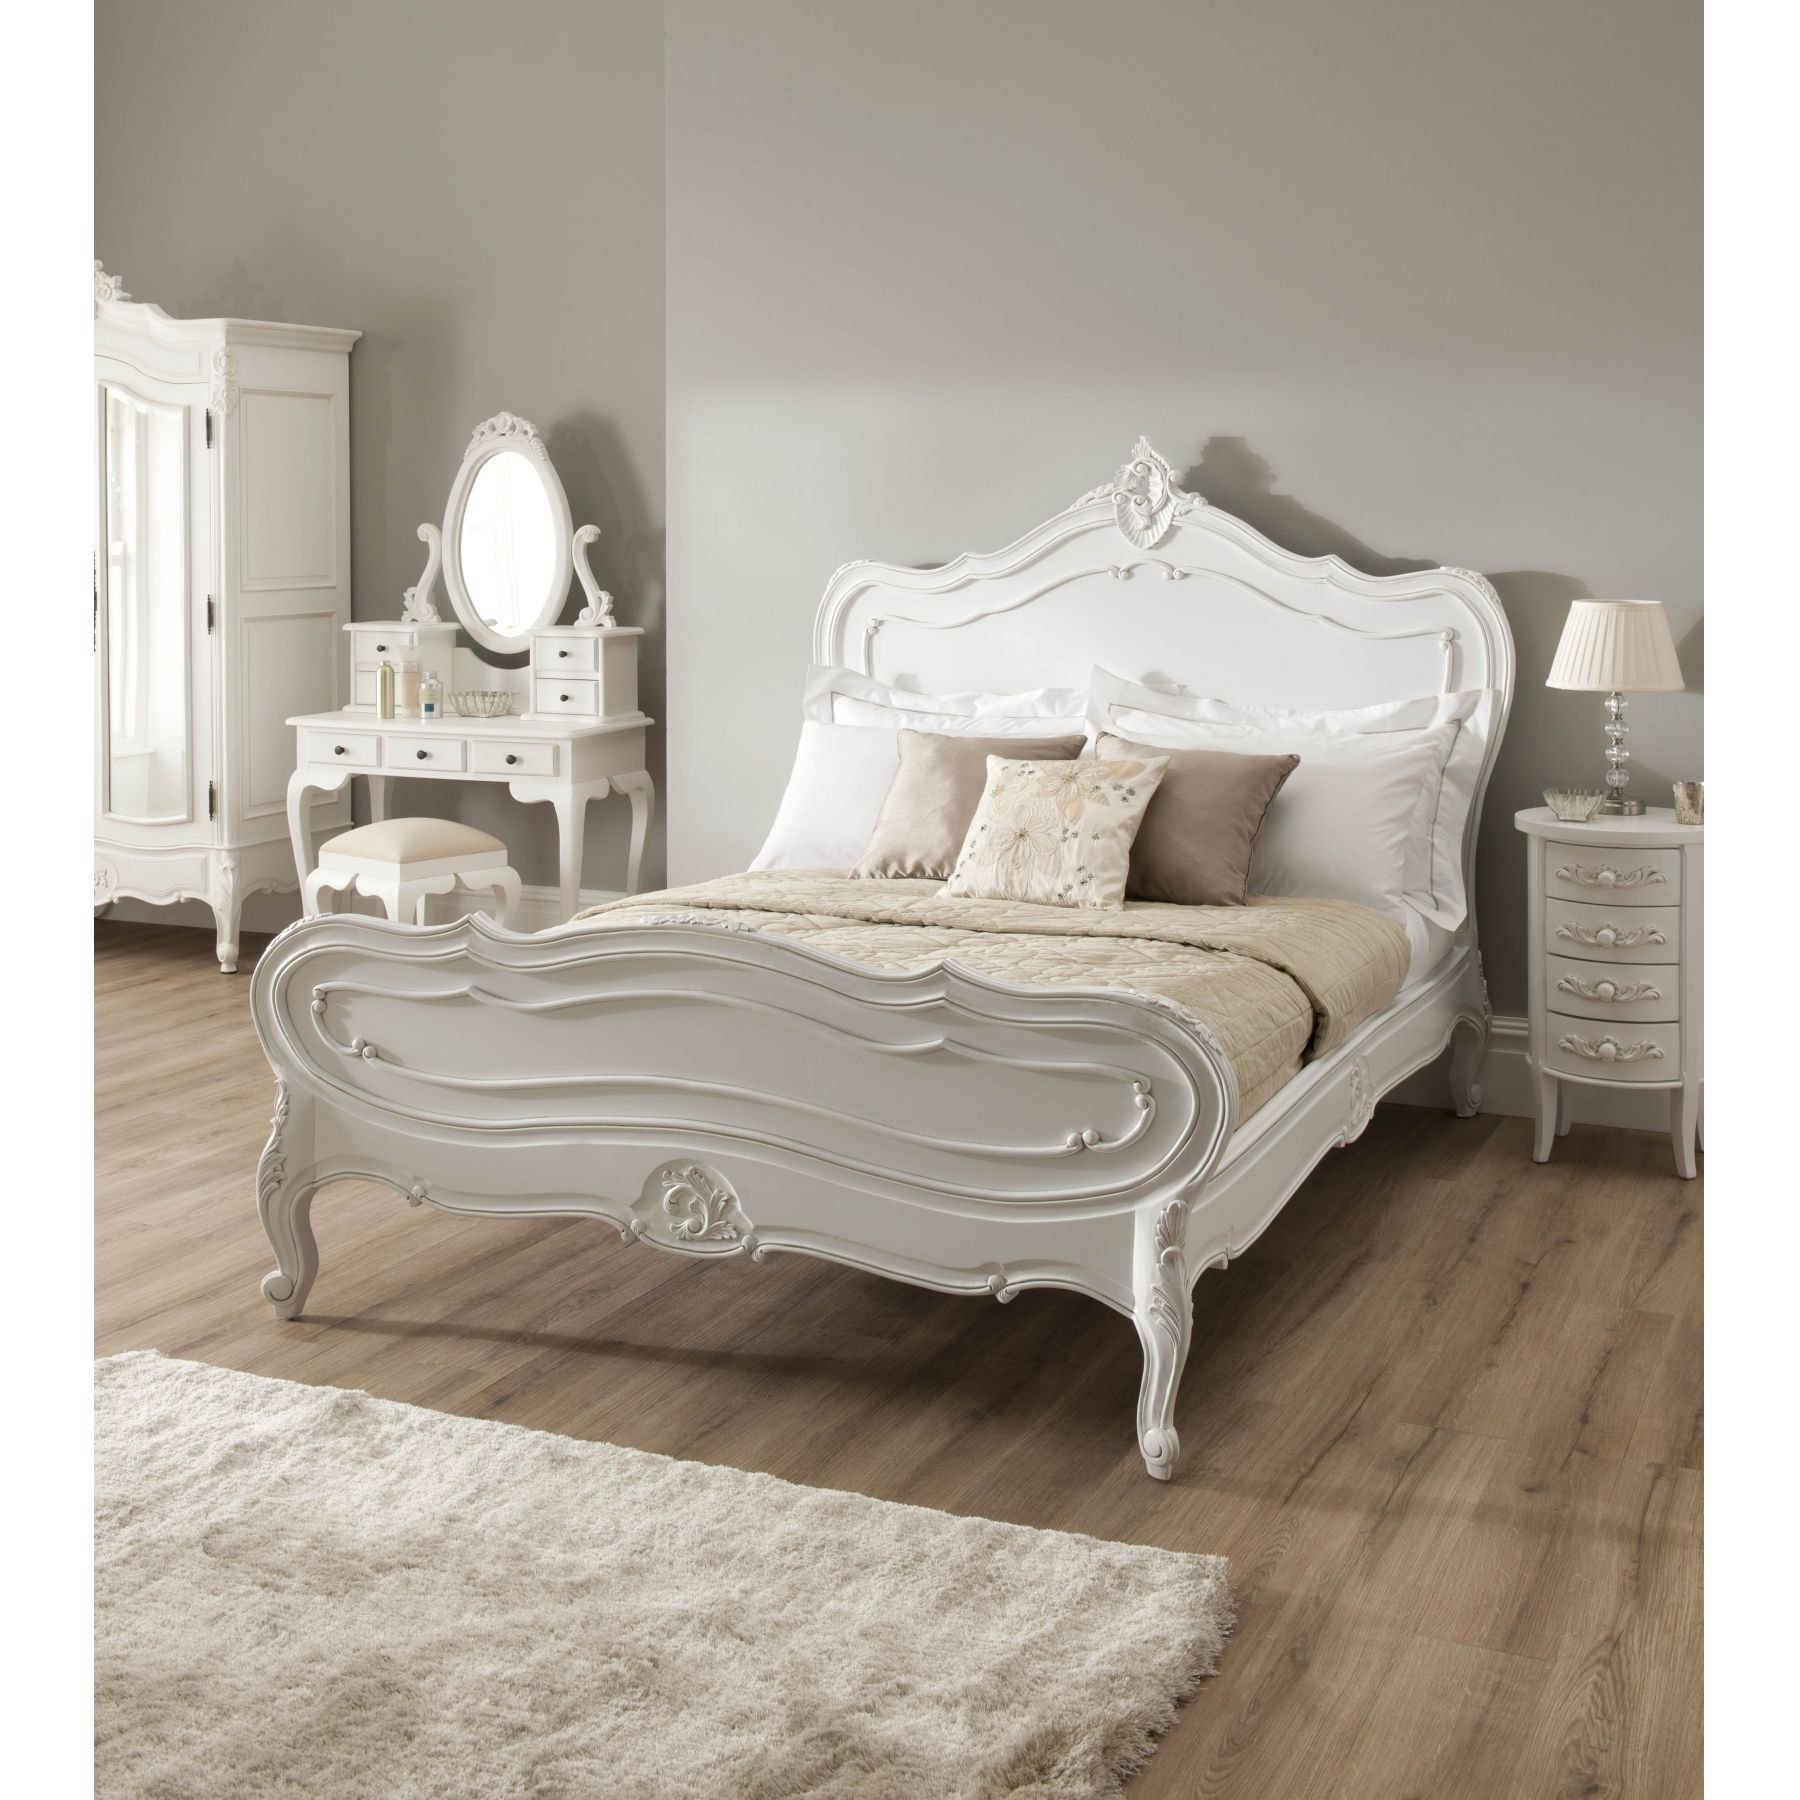 La rochelle antique french style bed carved mahogany for French style bedroom furniture